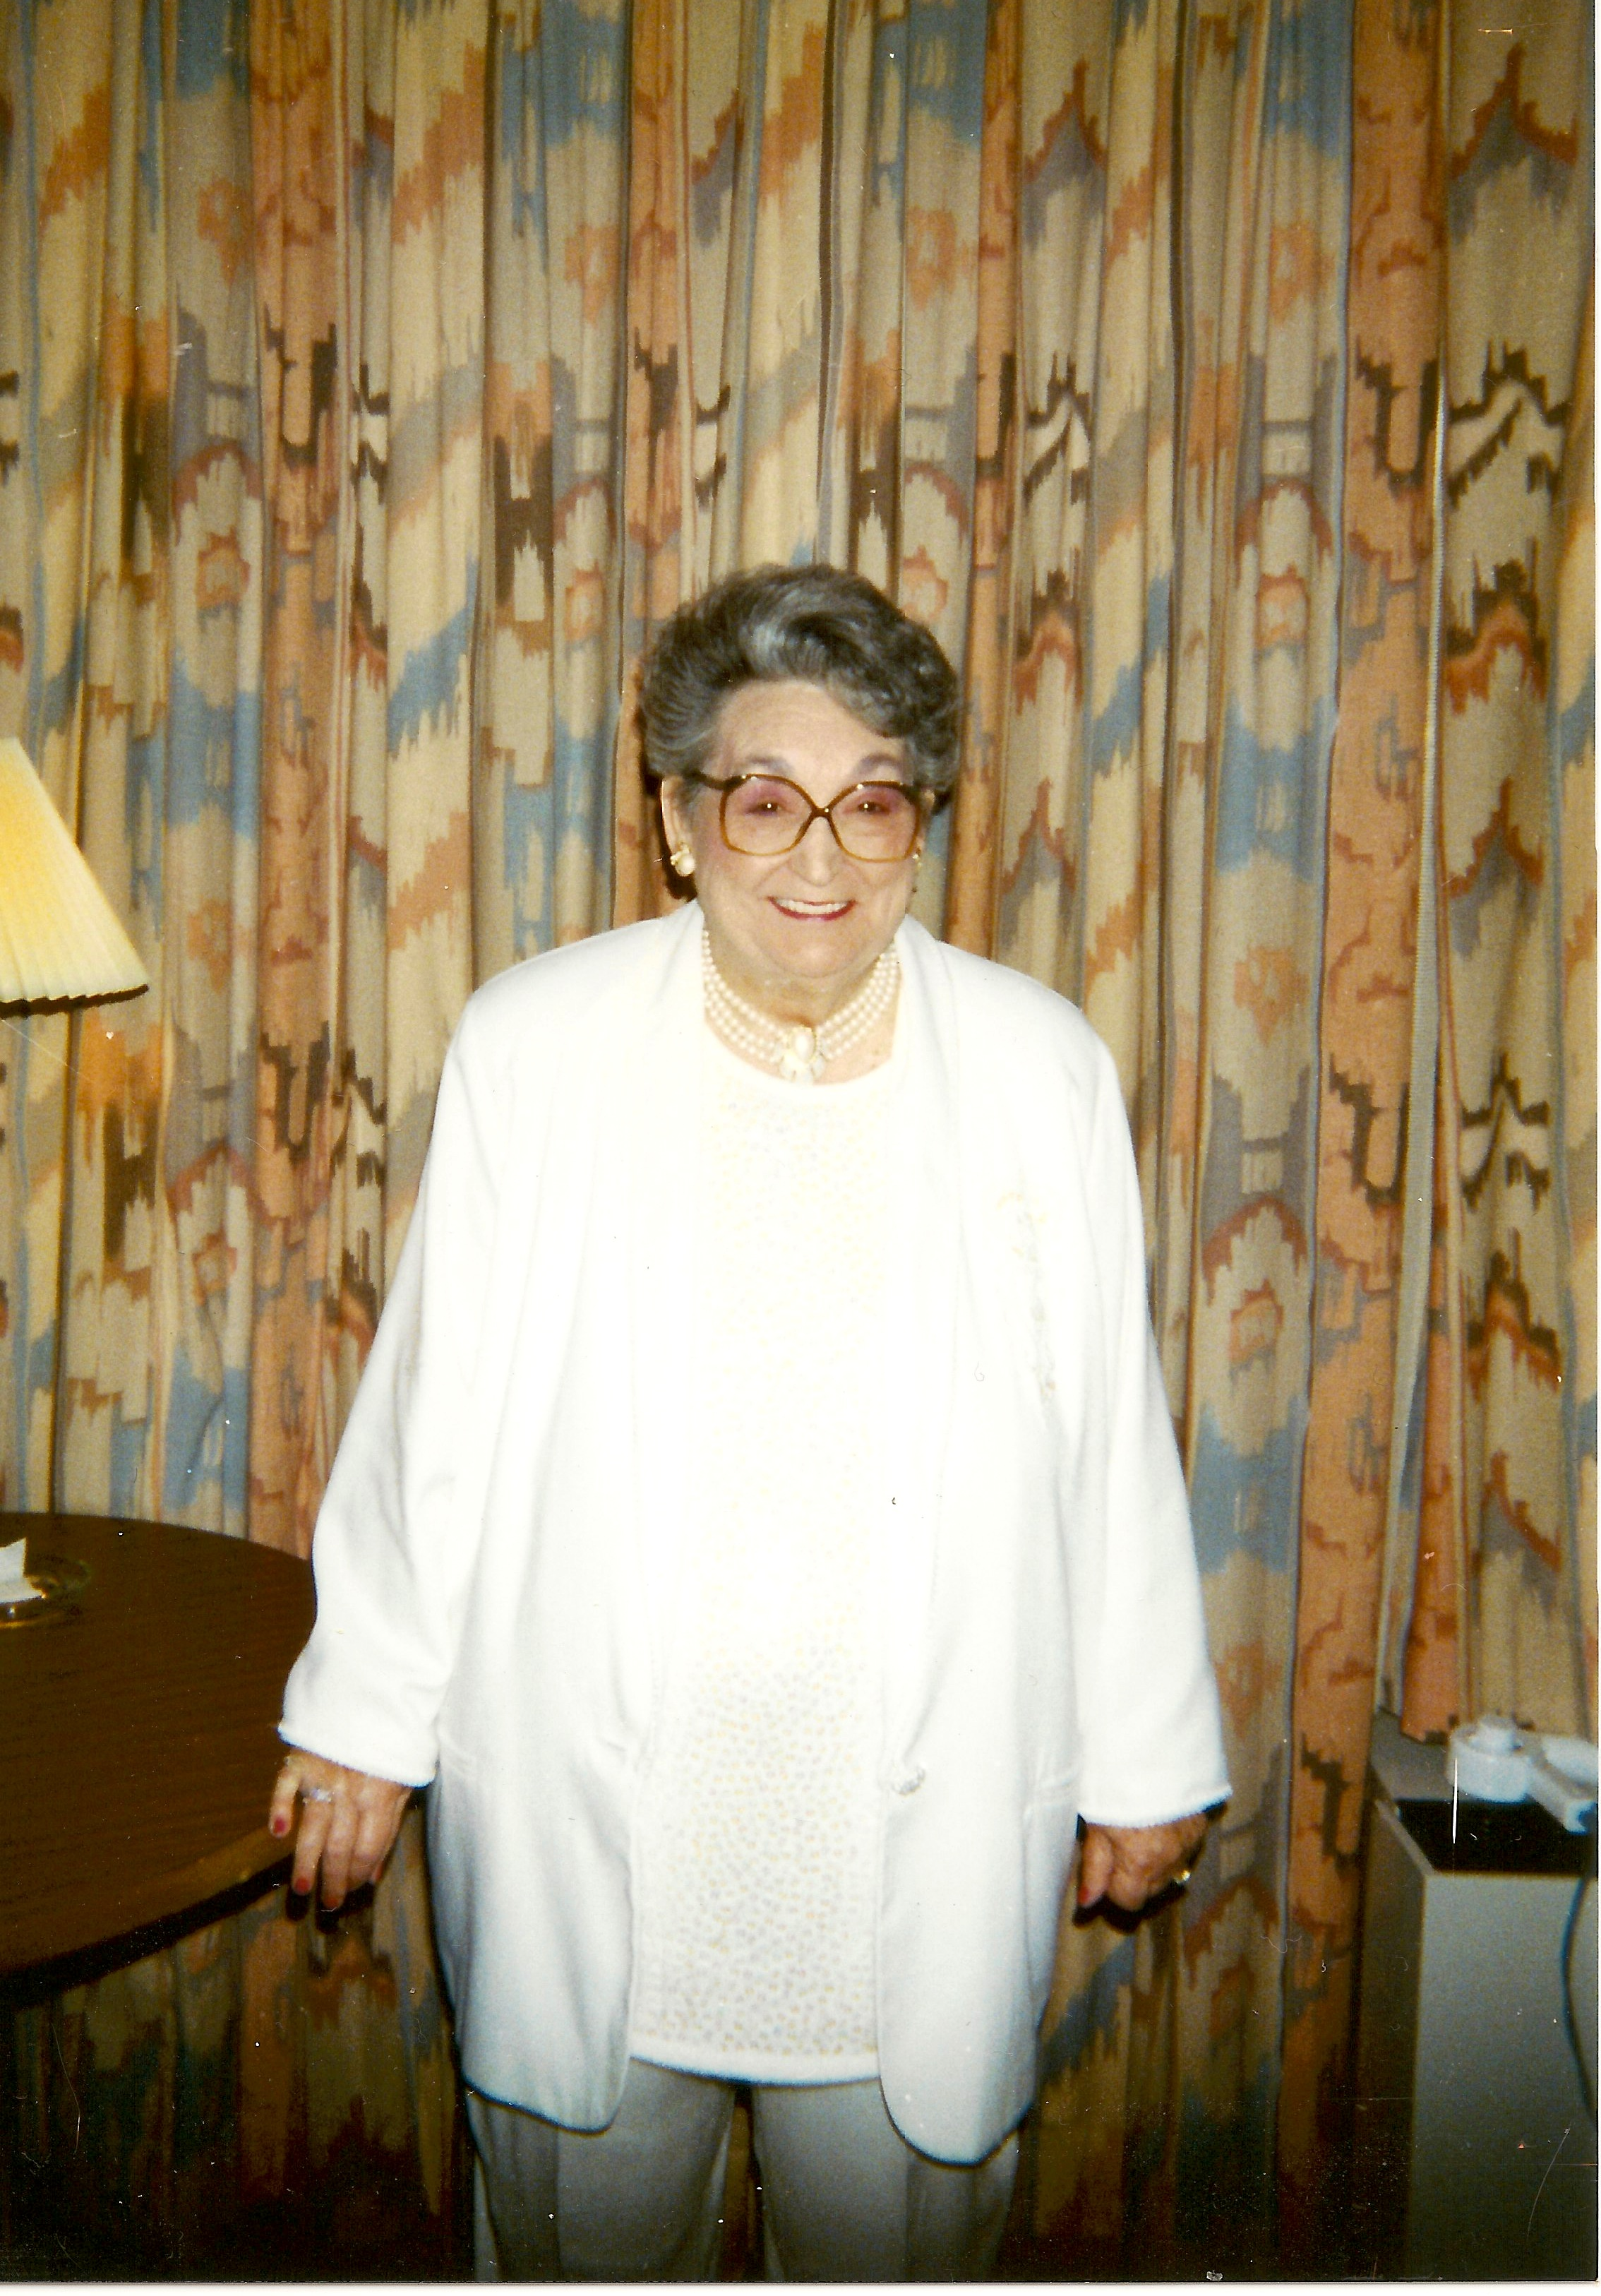 Mother, Grandmother, Great-grandmother, & Aunt Dorothy Evelyn Chisholm Proctor